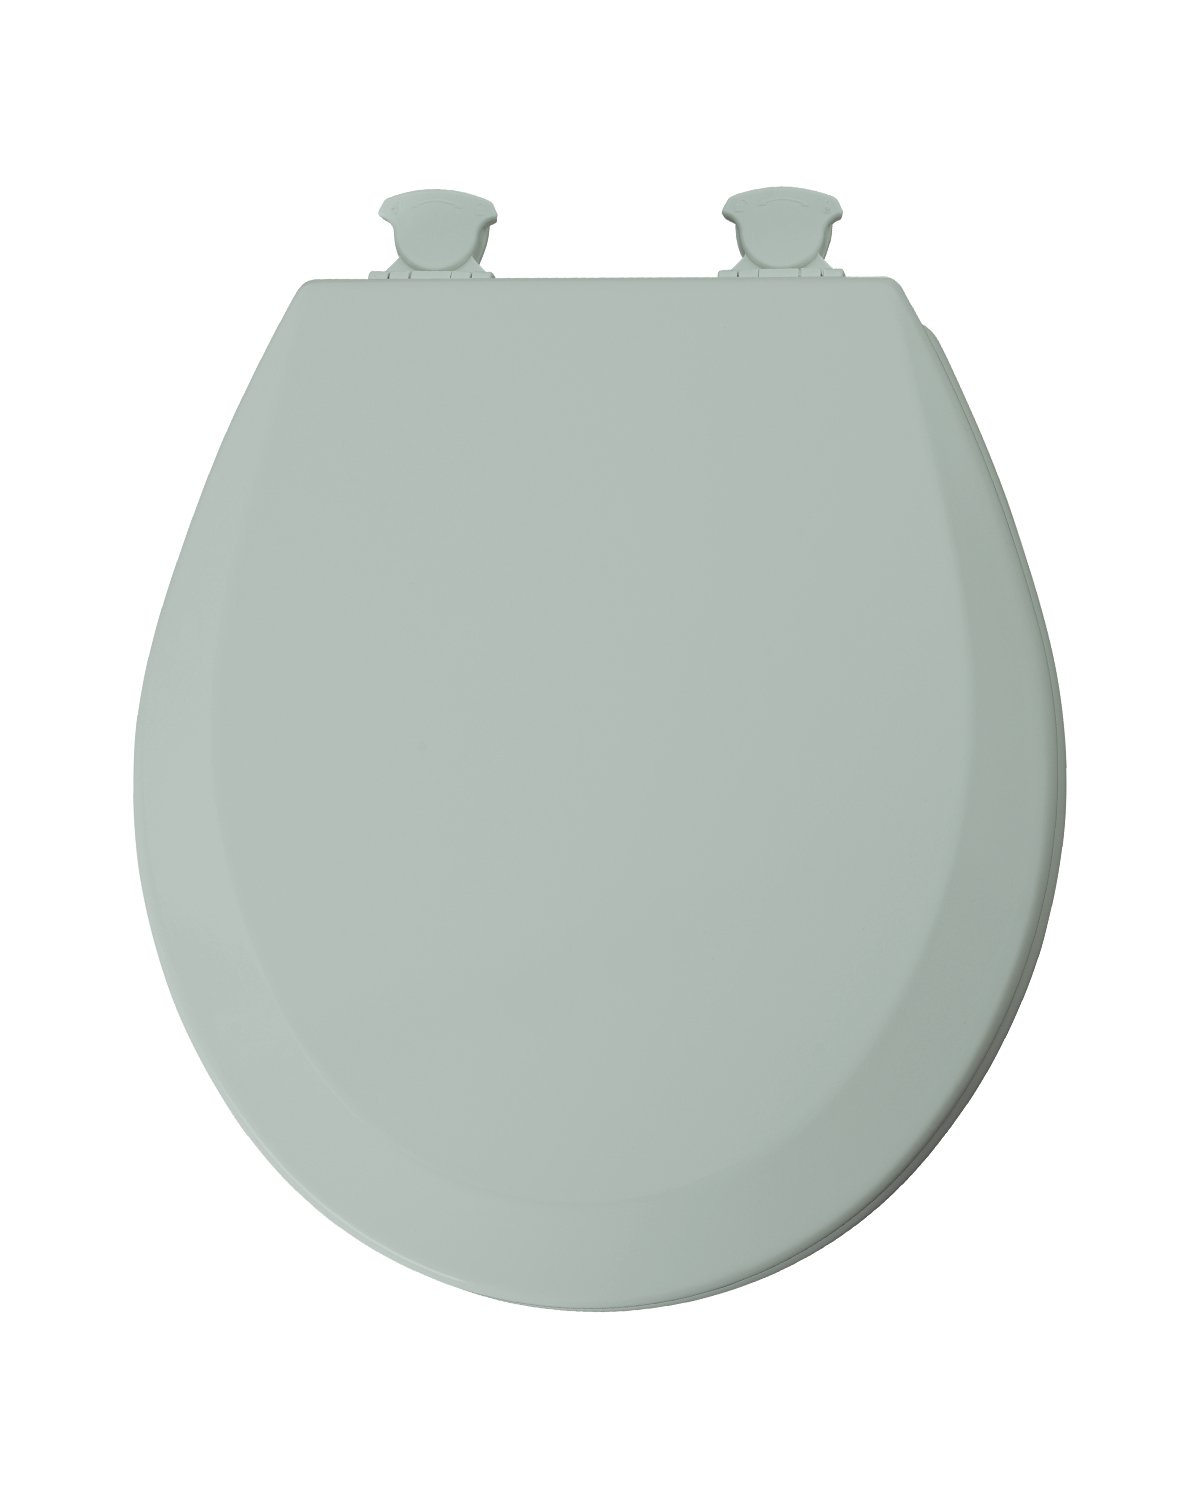 white wooden toilet seat soft close. Mayfair 46EC 455 Molded Wood Toilet Seat with Lift Off Hinges  Round Seafoam Green Amazon com